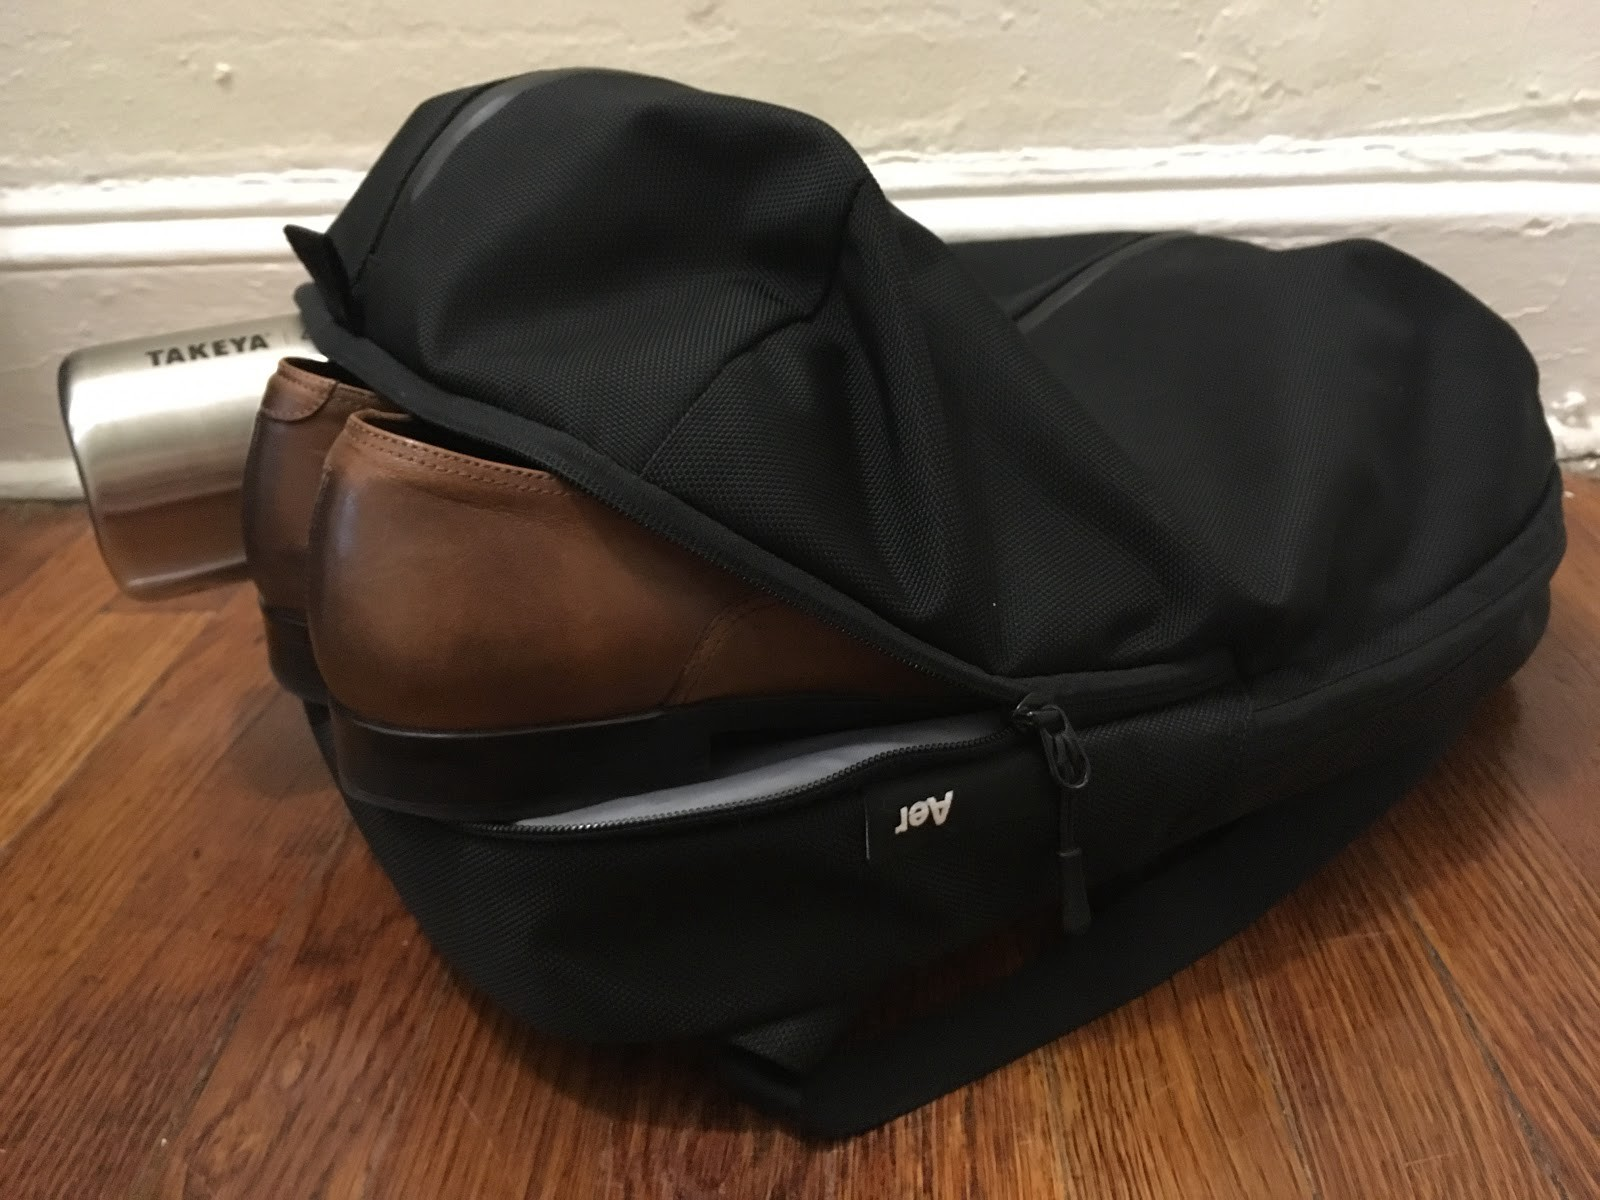 01b0282f75db Aer Fit Pack Review  Perfect Work Gym Bag for the City